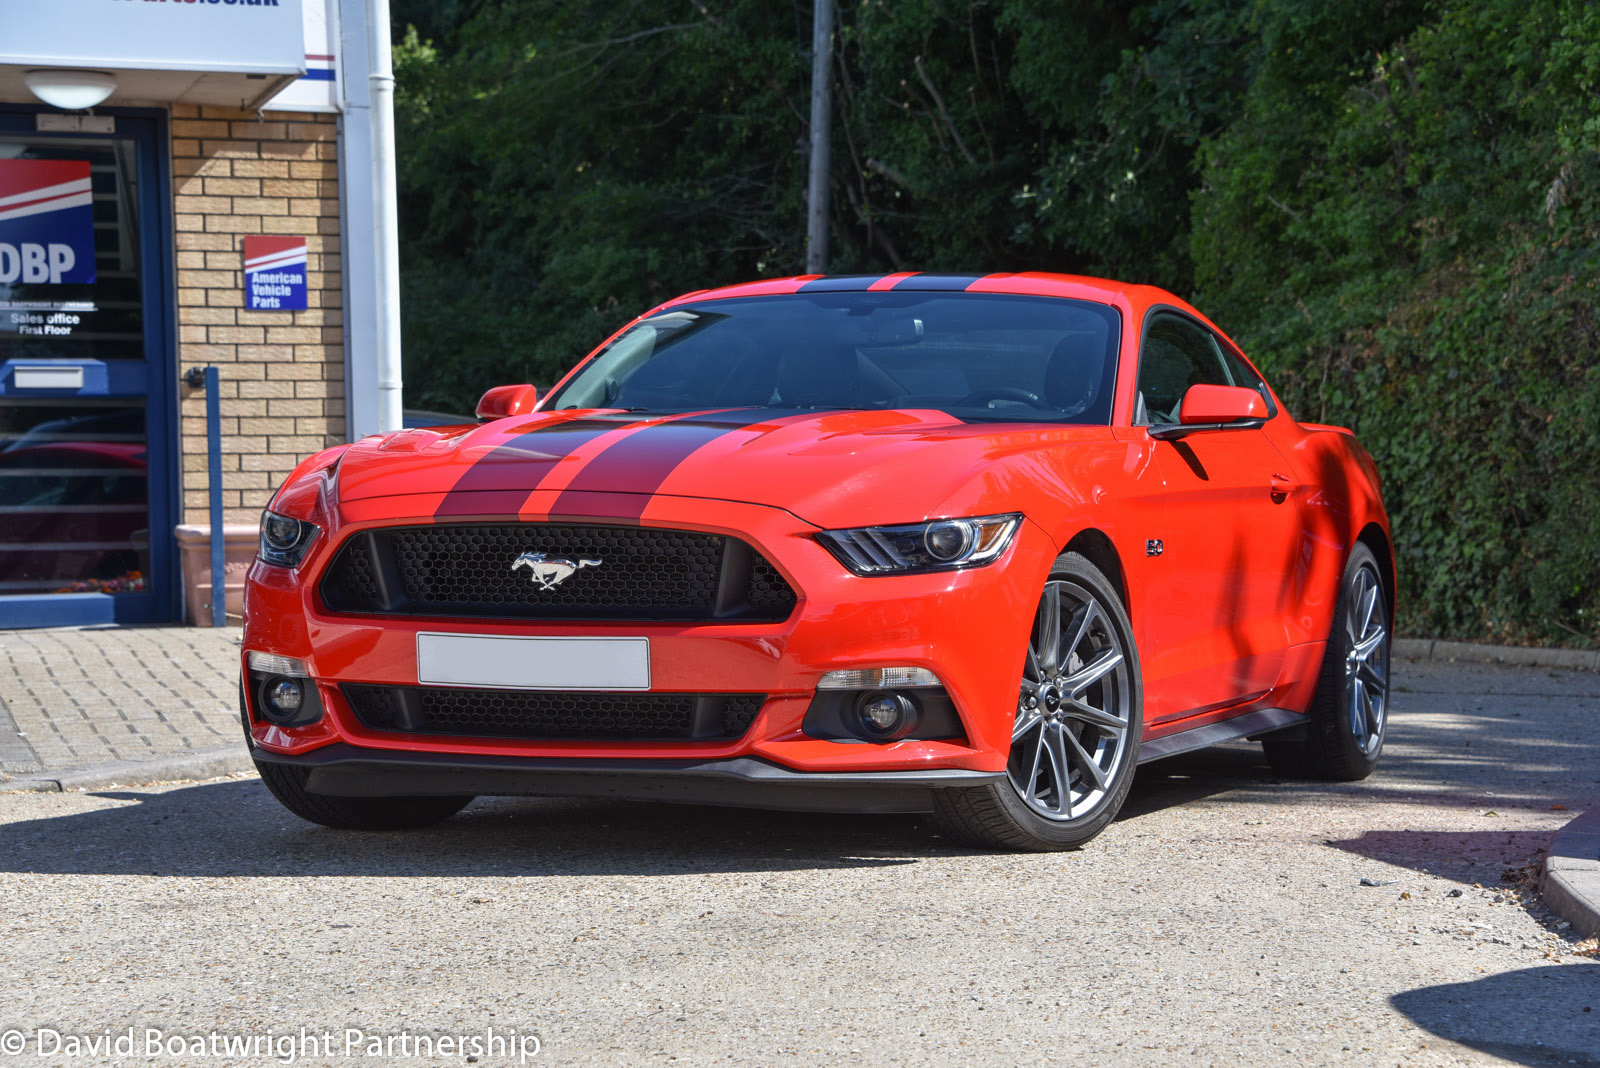 LHD Mustang GT for sale